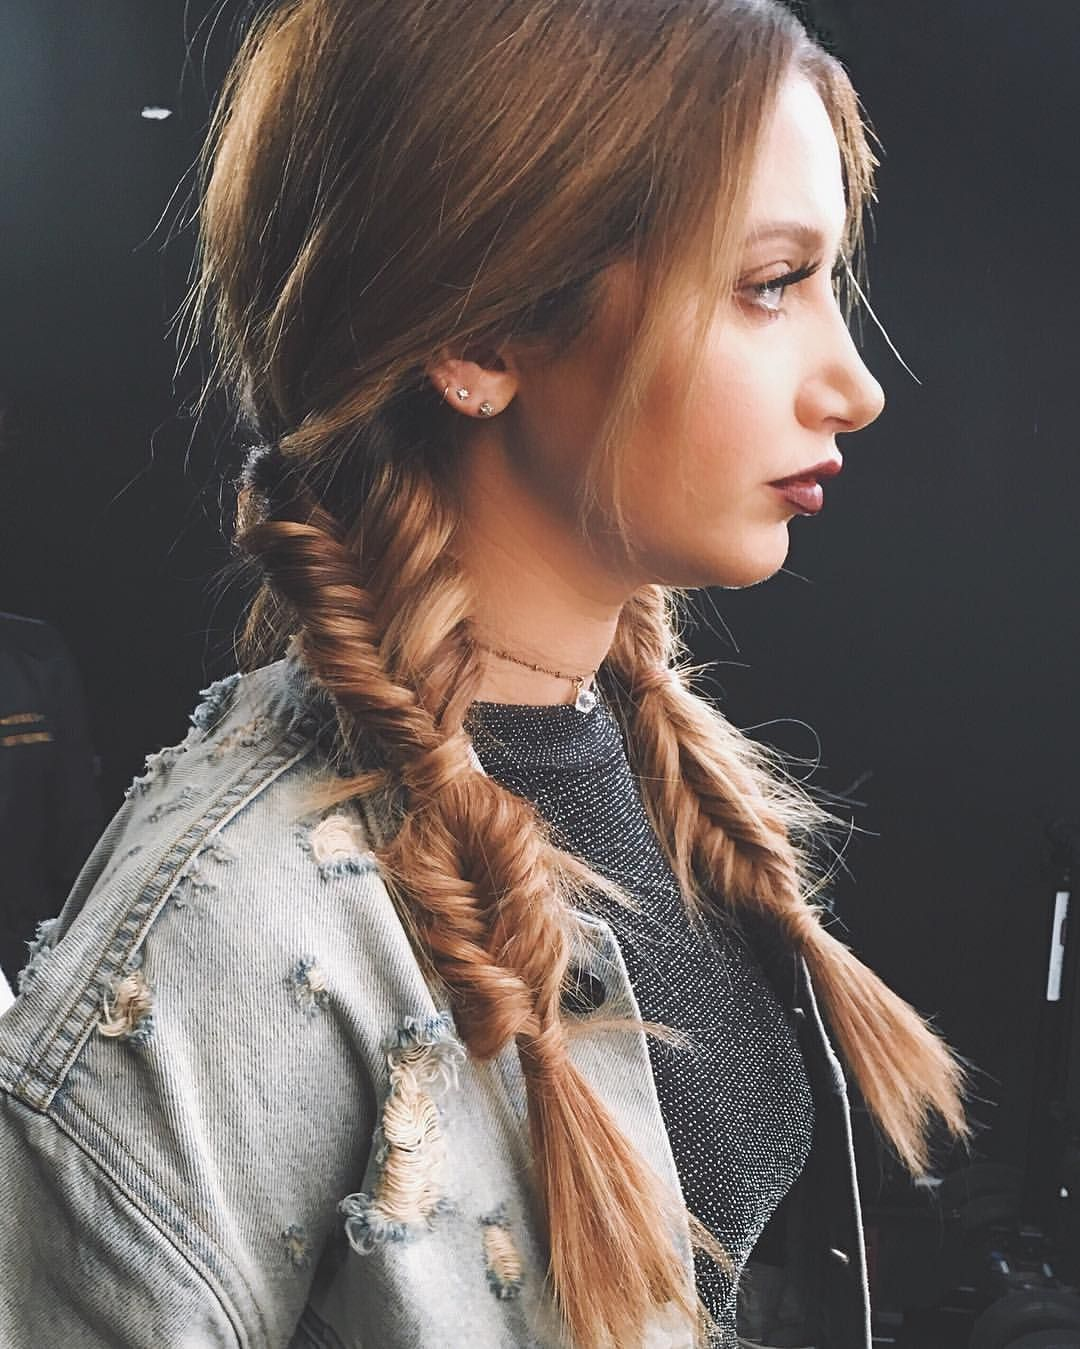 Discussion on this topic: Cute Braided Hairstyles: Ashley Tisdale Hair, cute-braided-hairstyles-ashley-tisdale-hair/